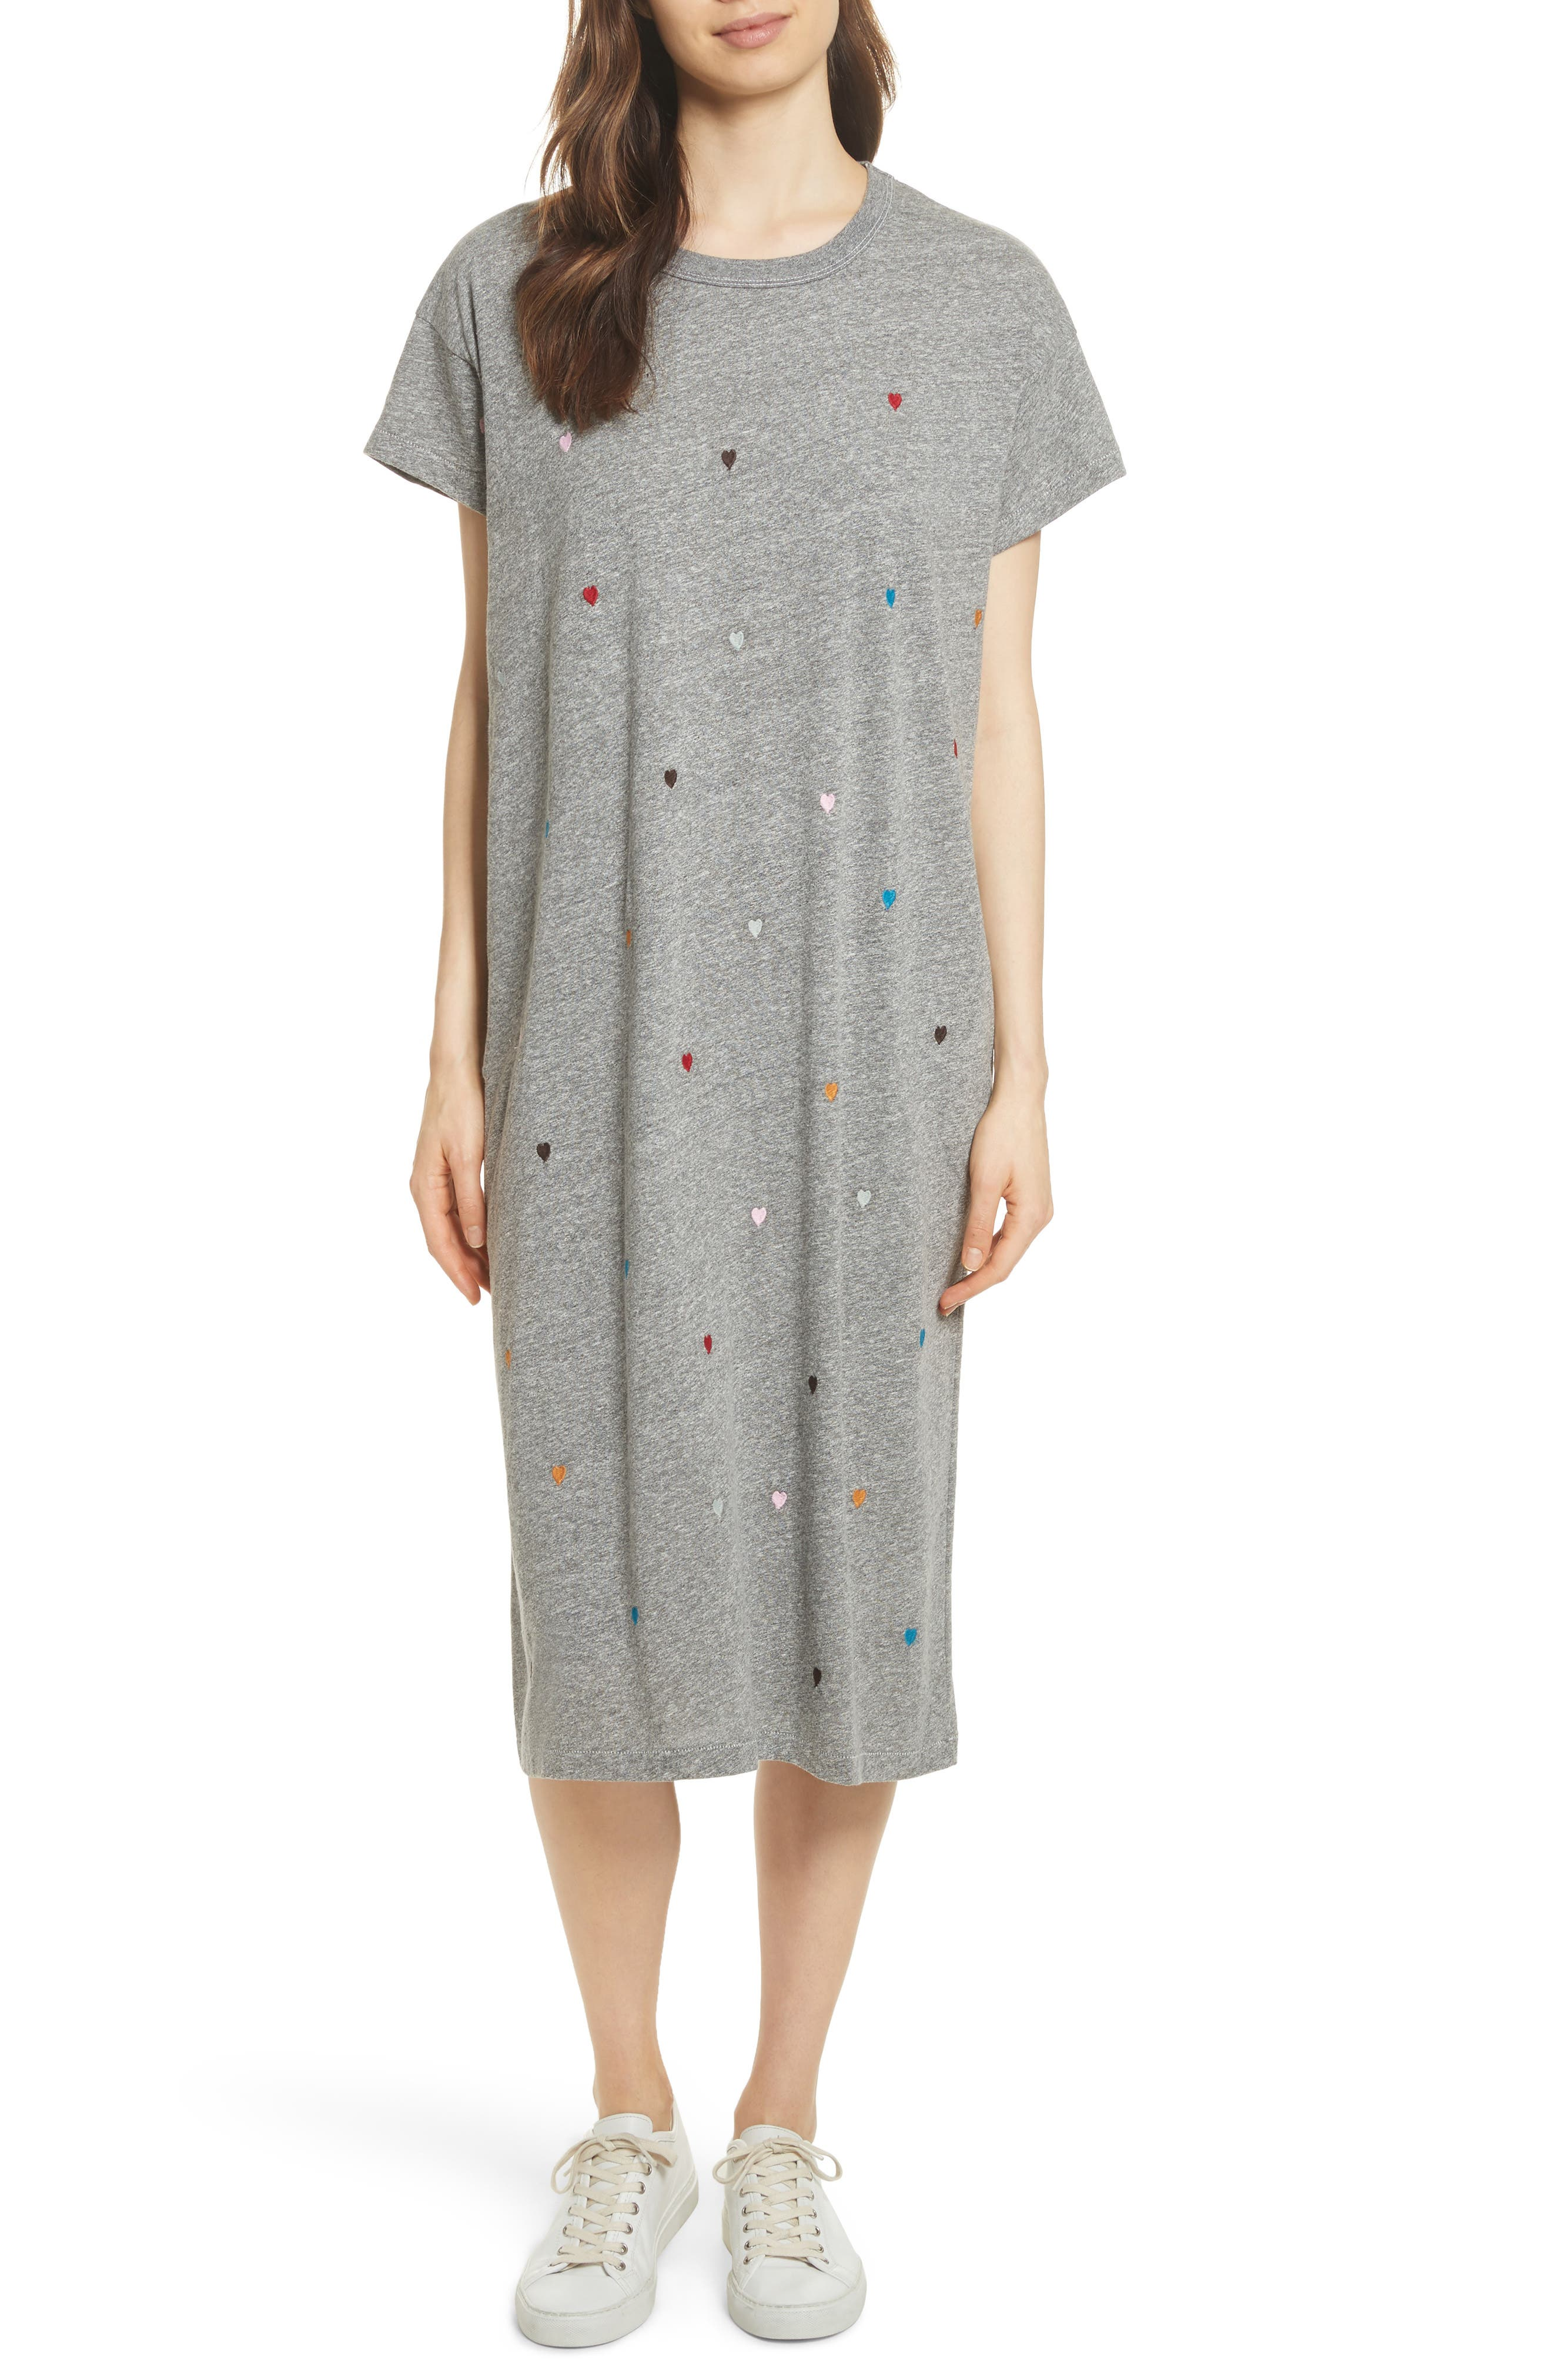 The Boxy Embroidered T-Shirt Dress,                         Main,                         color, Grey/ Heart Embroidery